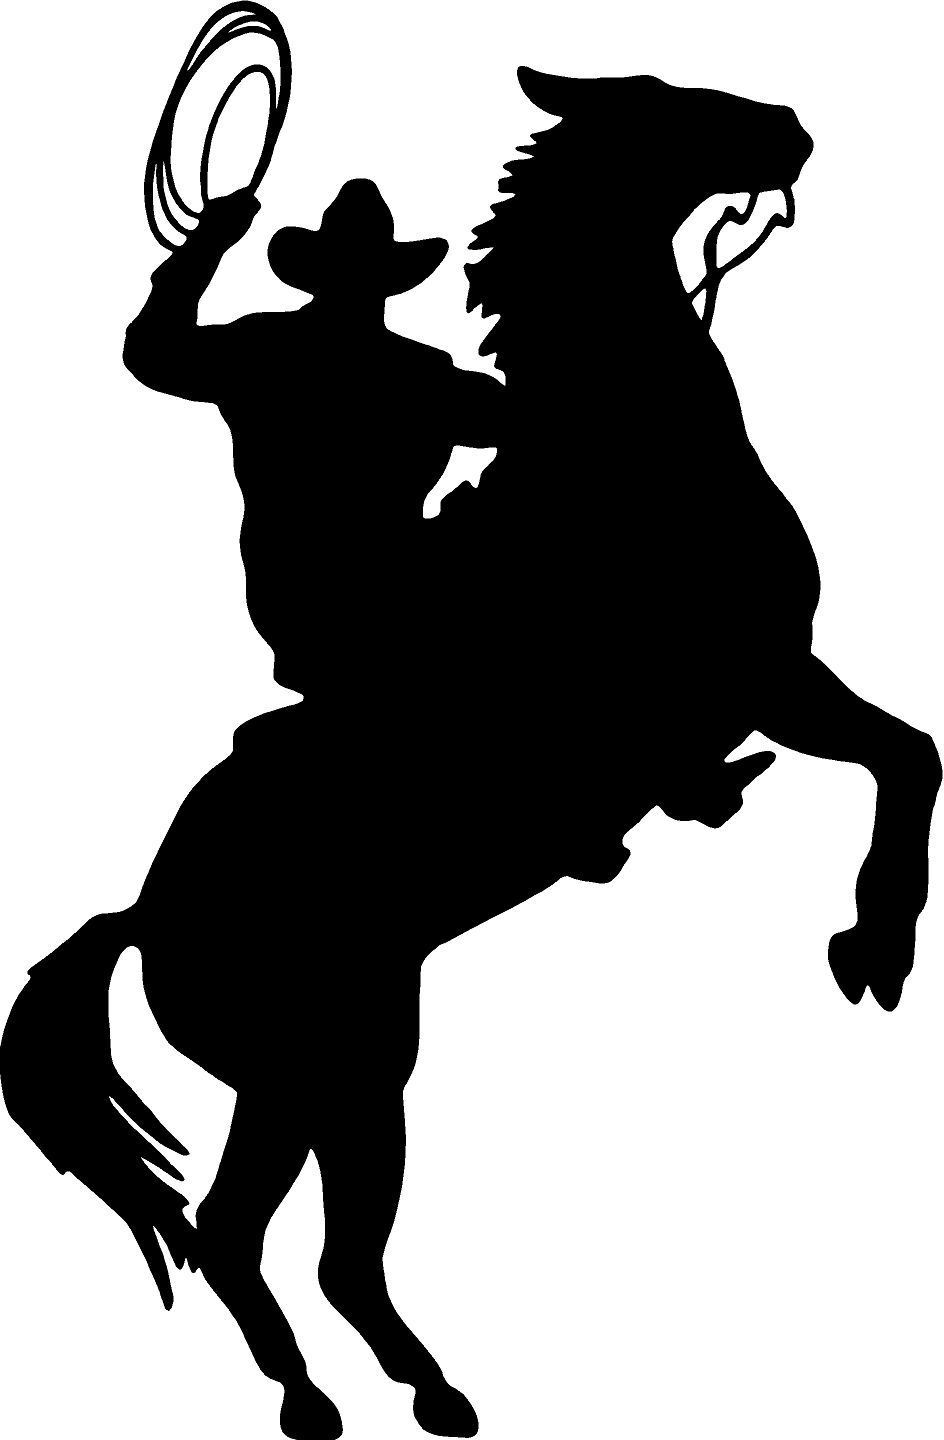 """COWBOY HORSE RIDER WESTERN WALL DECAL HOME DECOR SILHOUETTE LARGE 20"""" X 13""""Romoveable Pvc sticker Home decoration(China (Mainland))"""